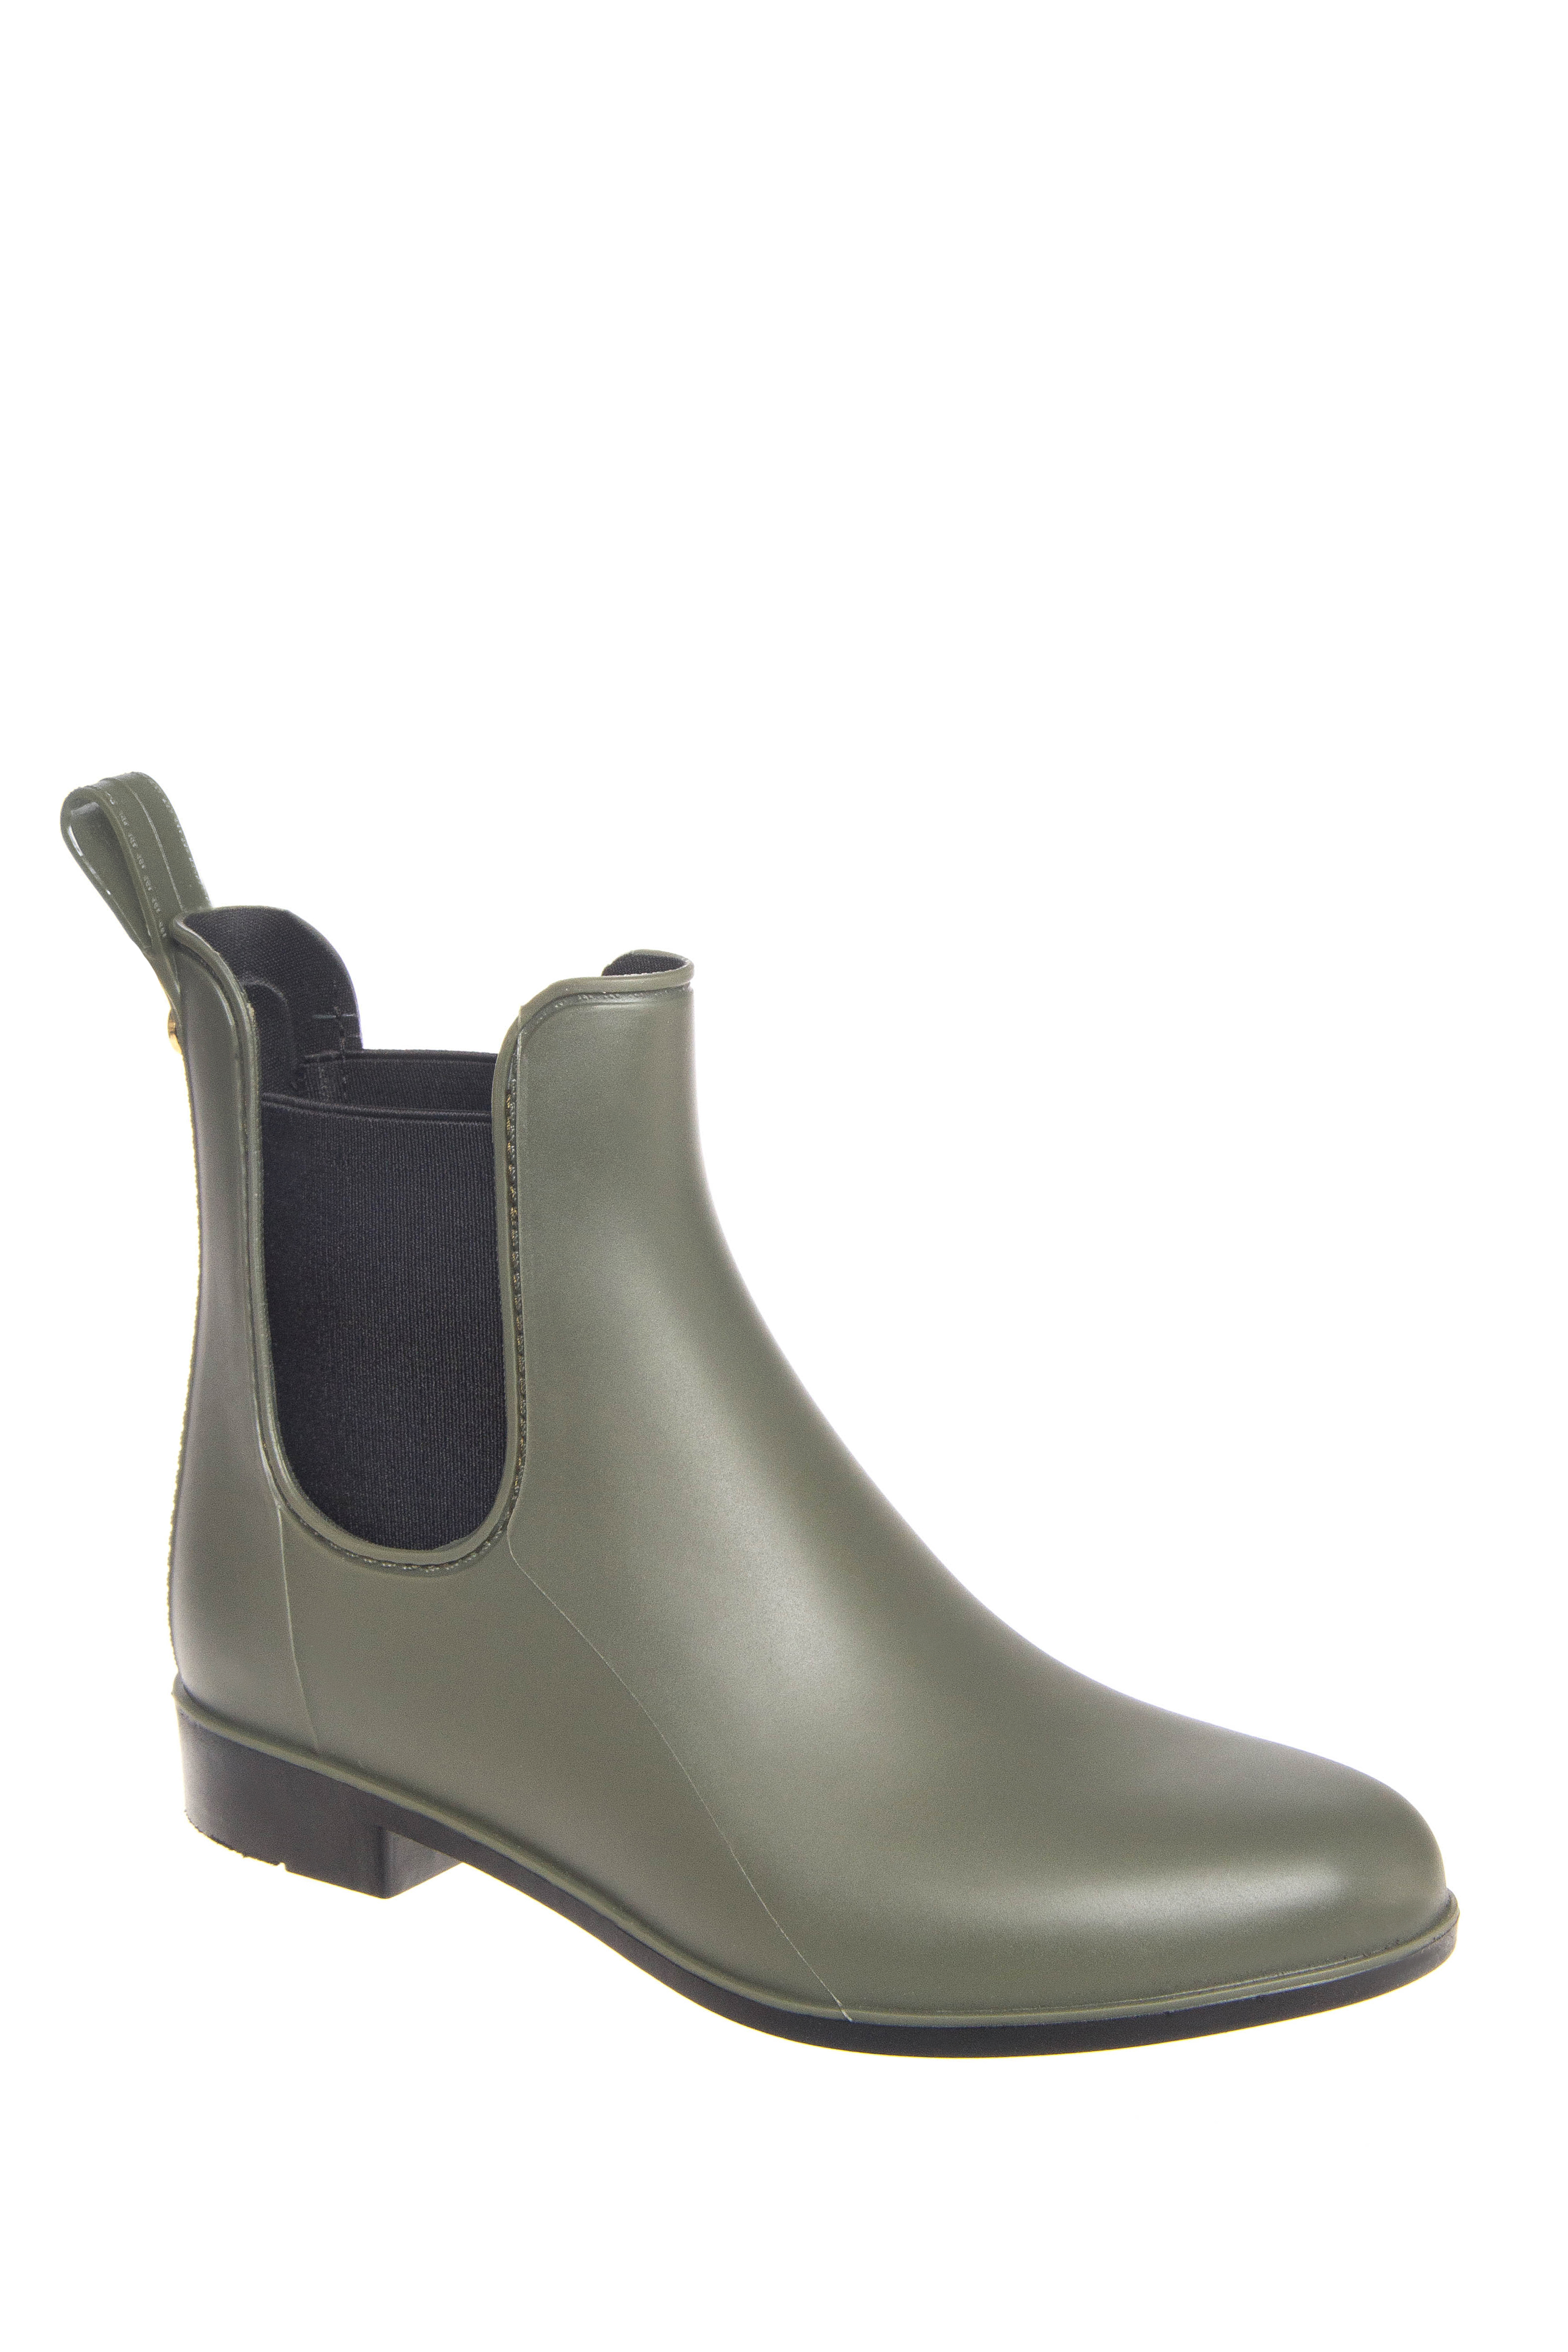 Sam Edelman Tinsley Low Heel Rain Boot